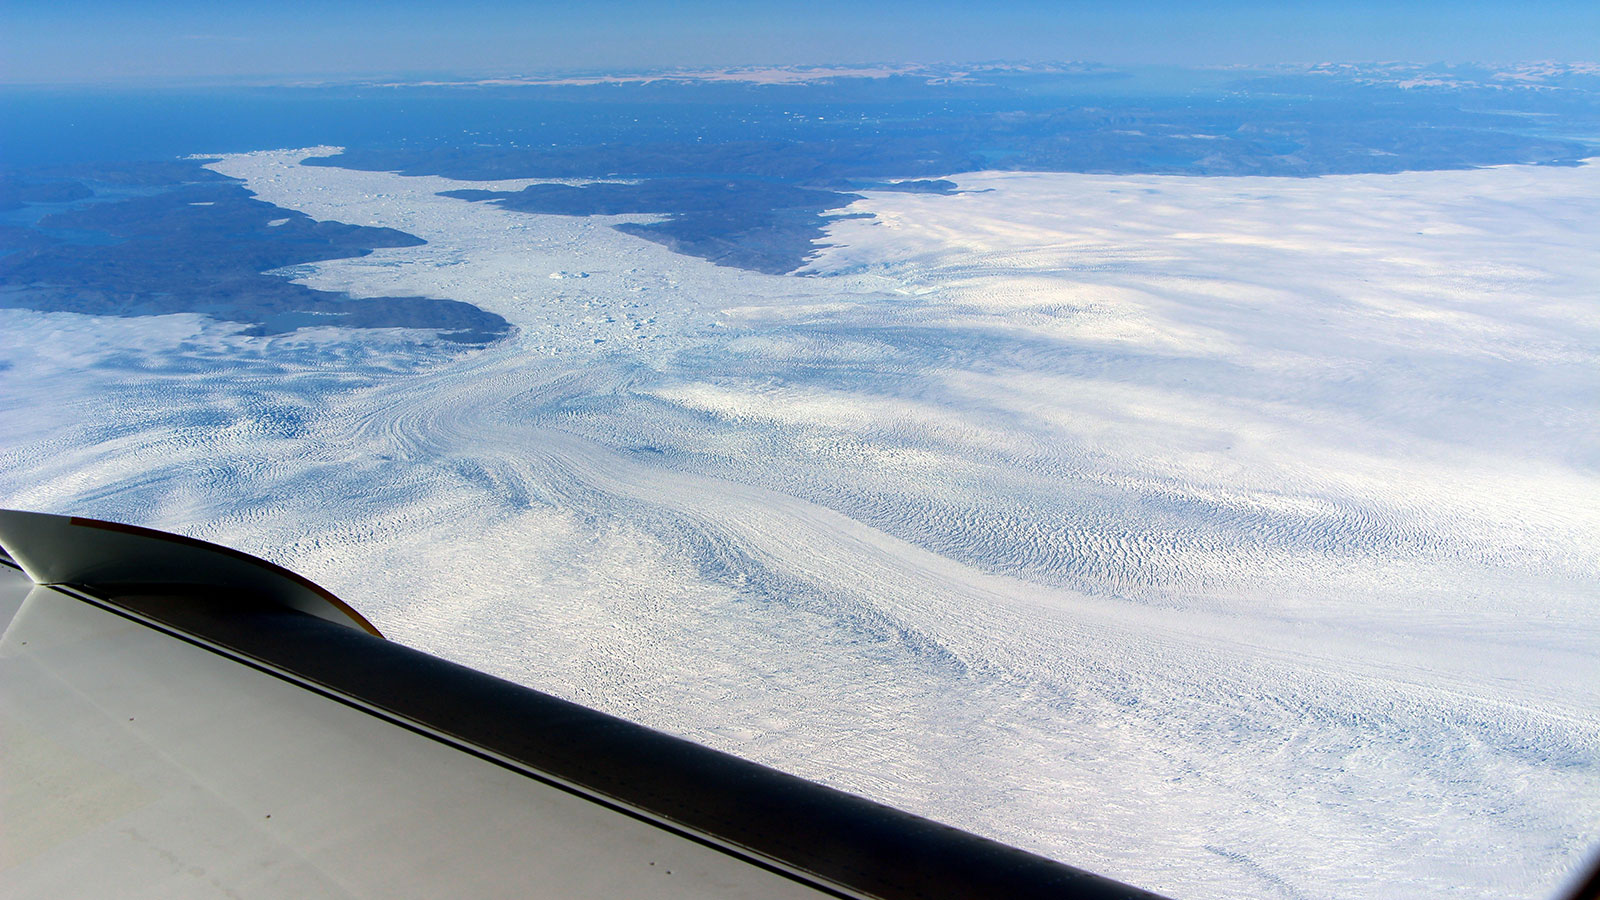 Cold Water Currently Slowing Fastest Greenland Glacier | NASA